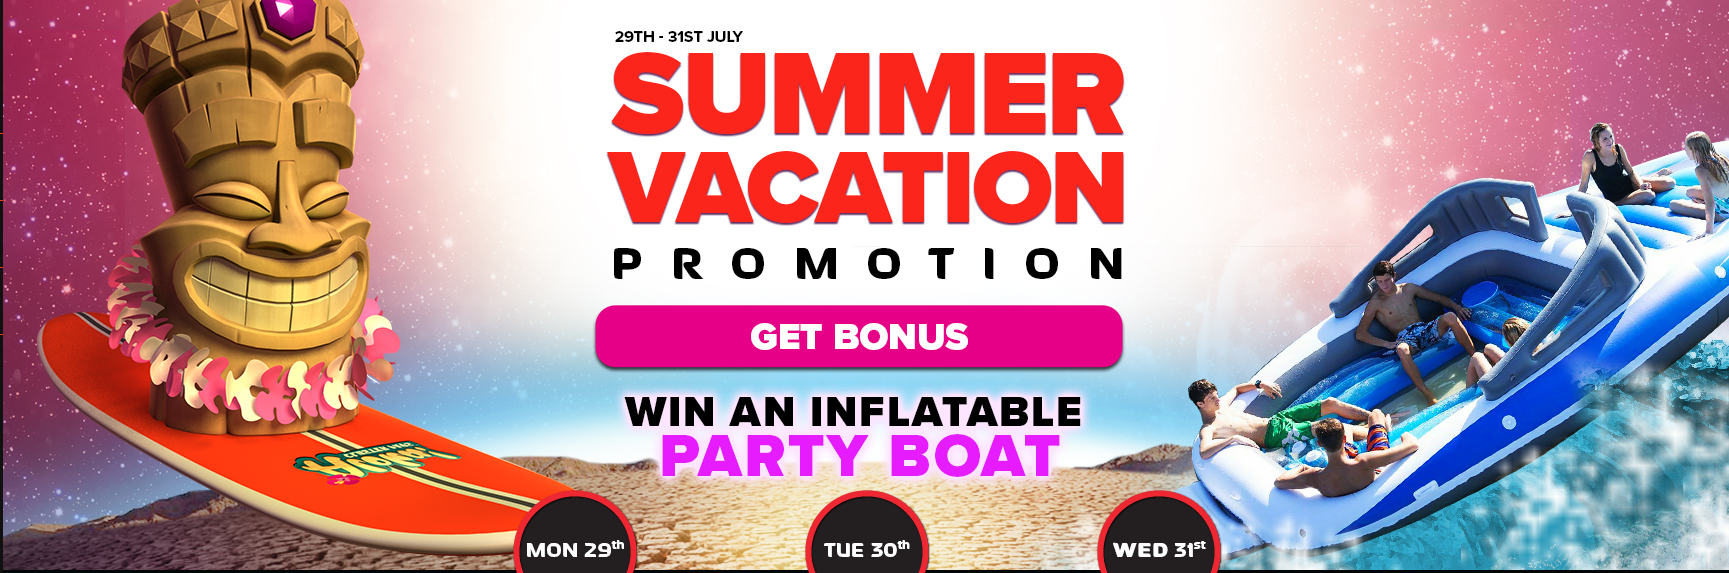 Win an inflatable party boat and claim free spins